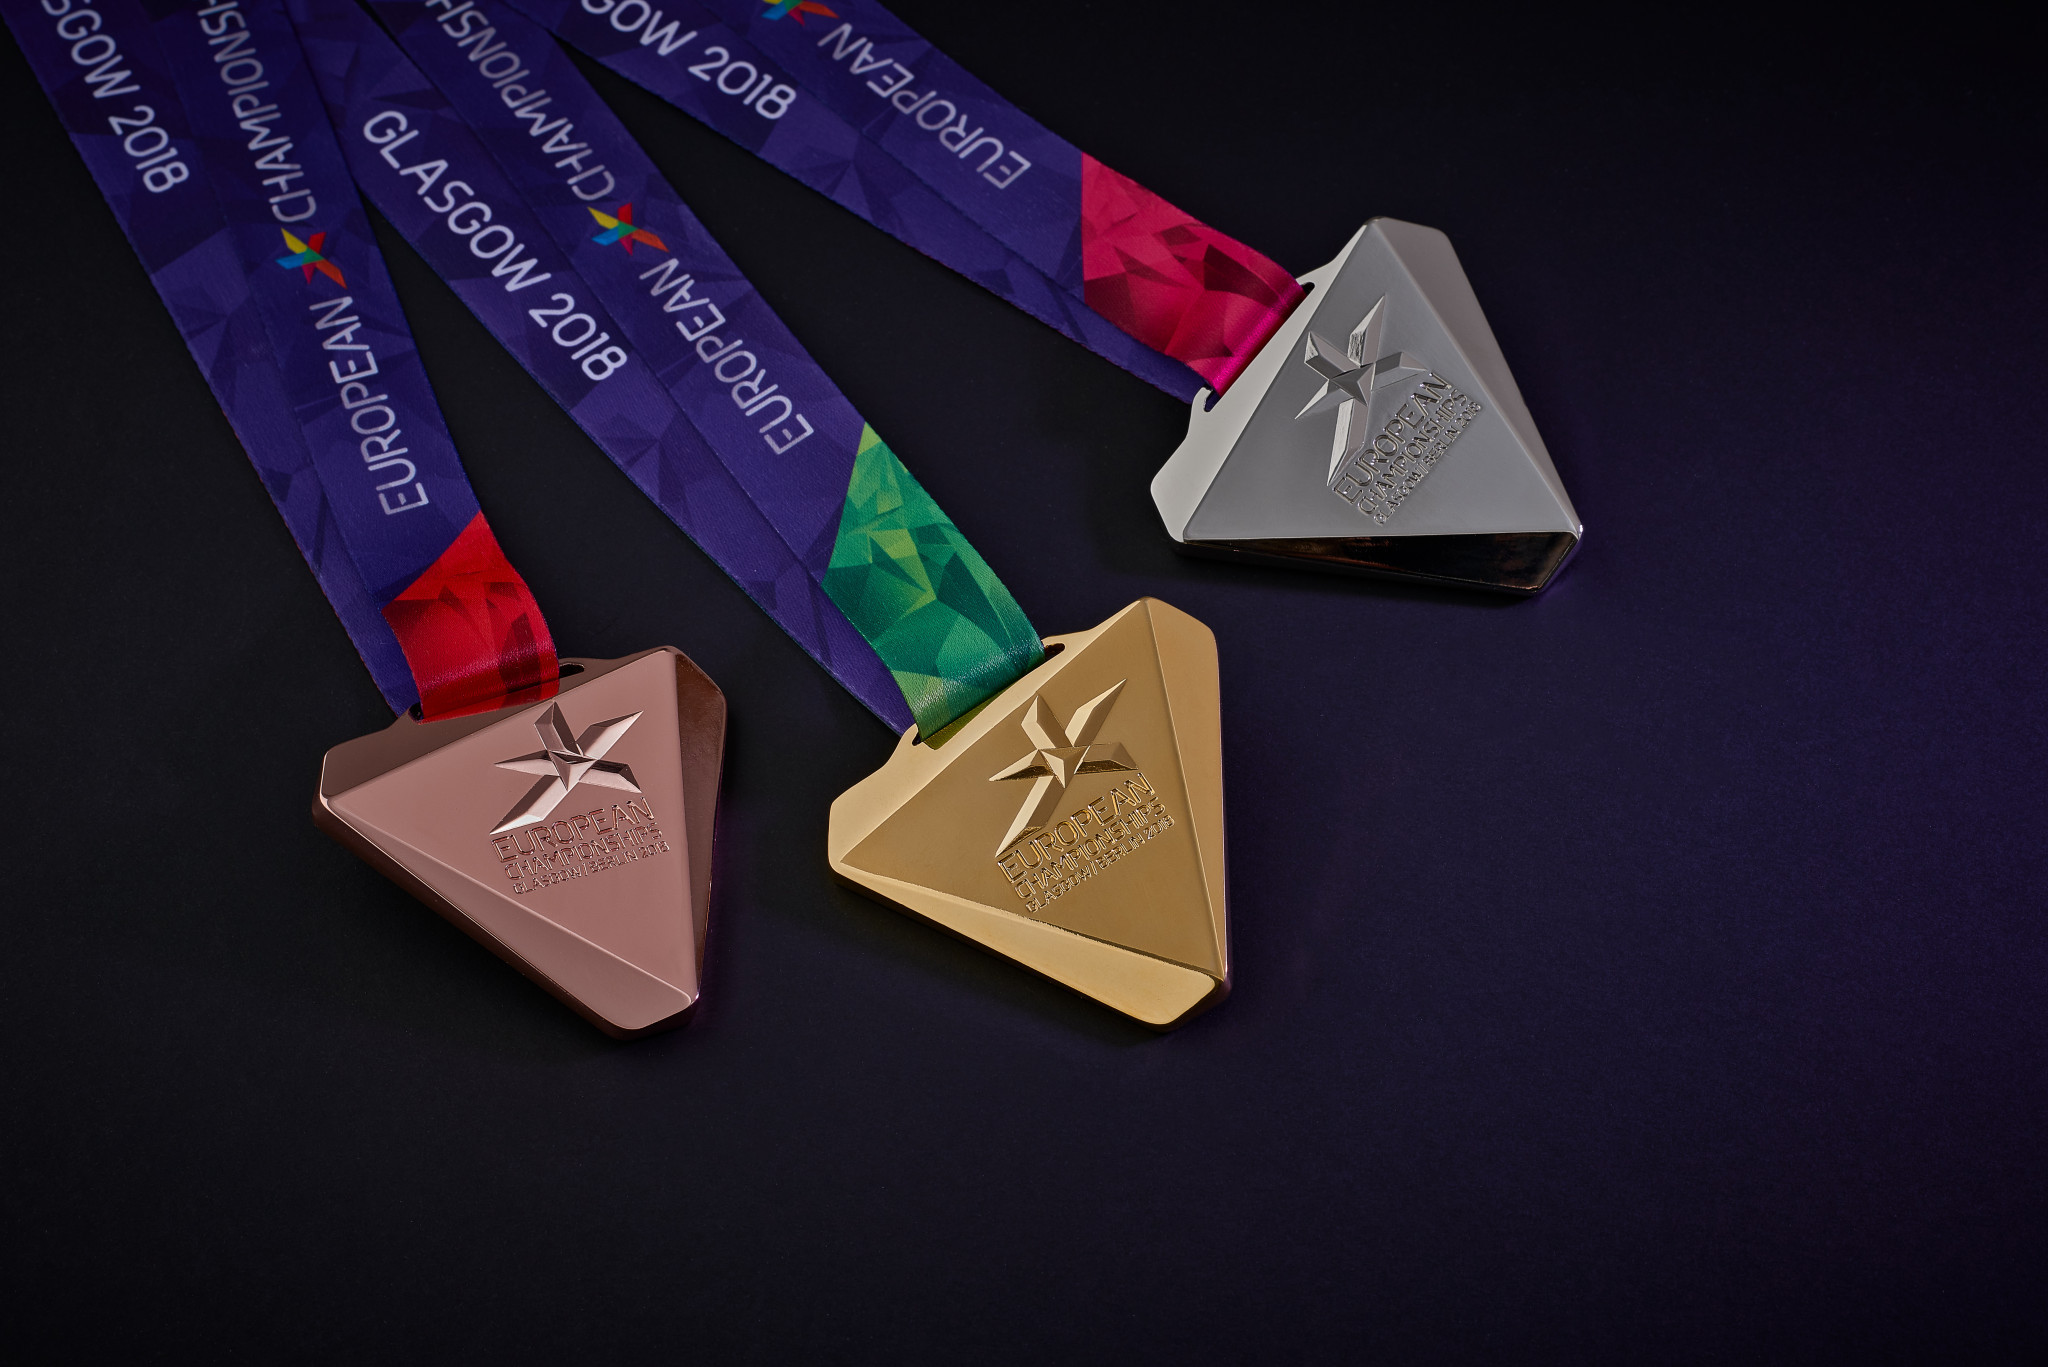 Medal design revealed for Glasgow and Berlin European Championships